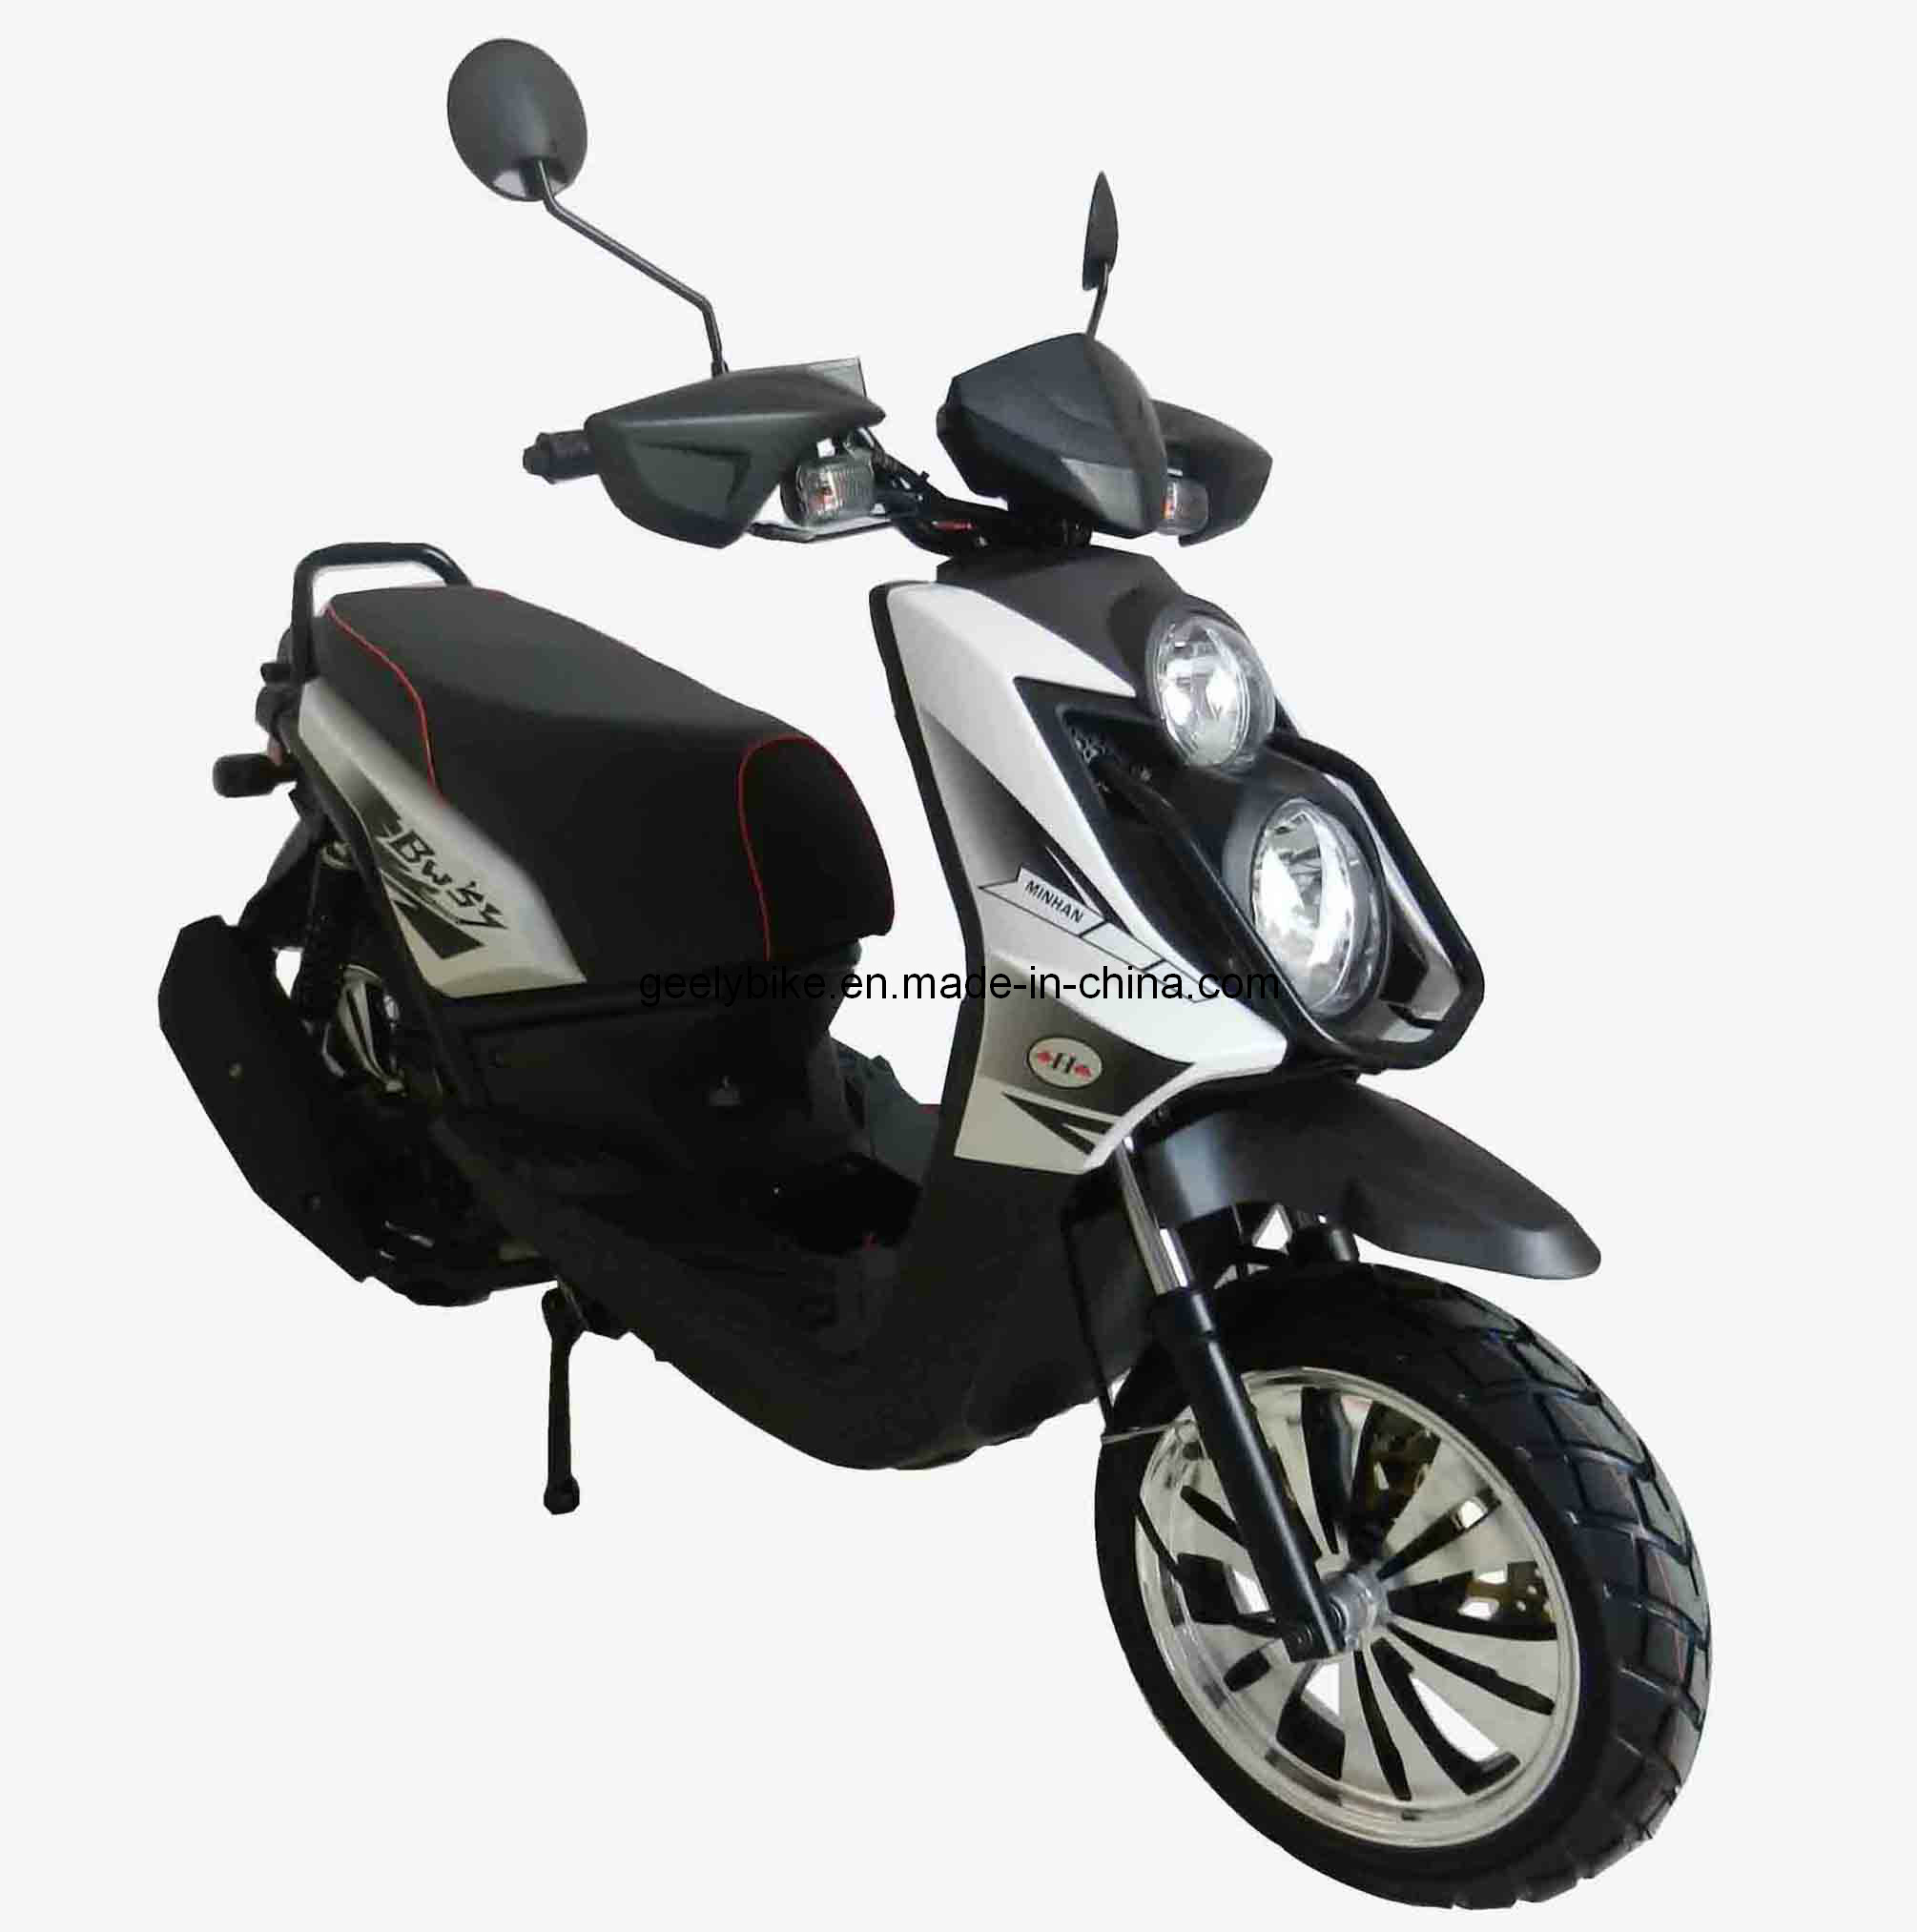 Bws Type Big-Wheel Scooter Jl150t-50b